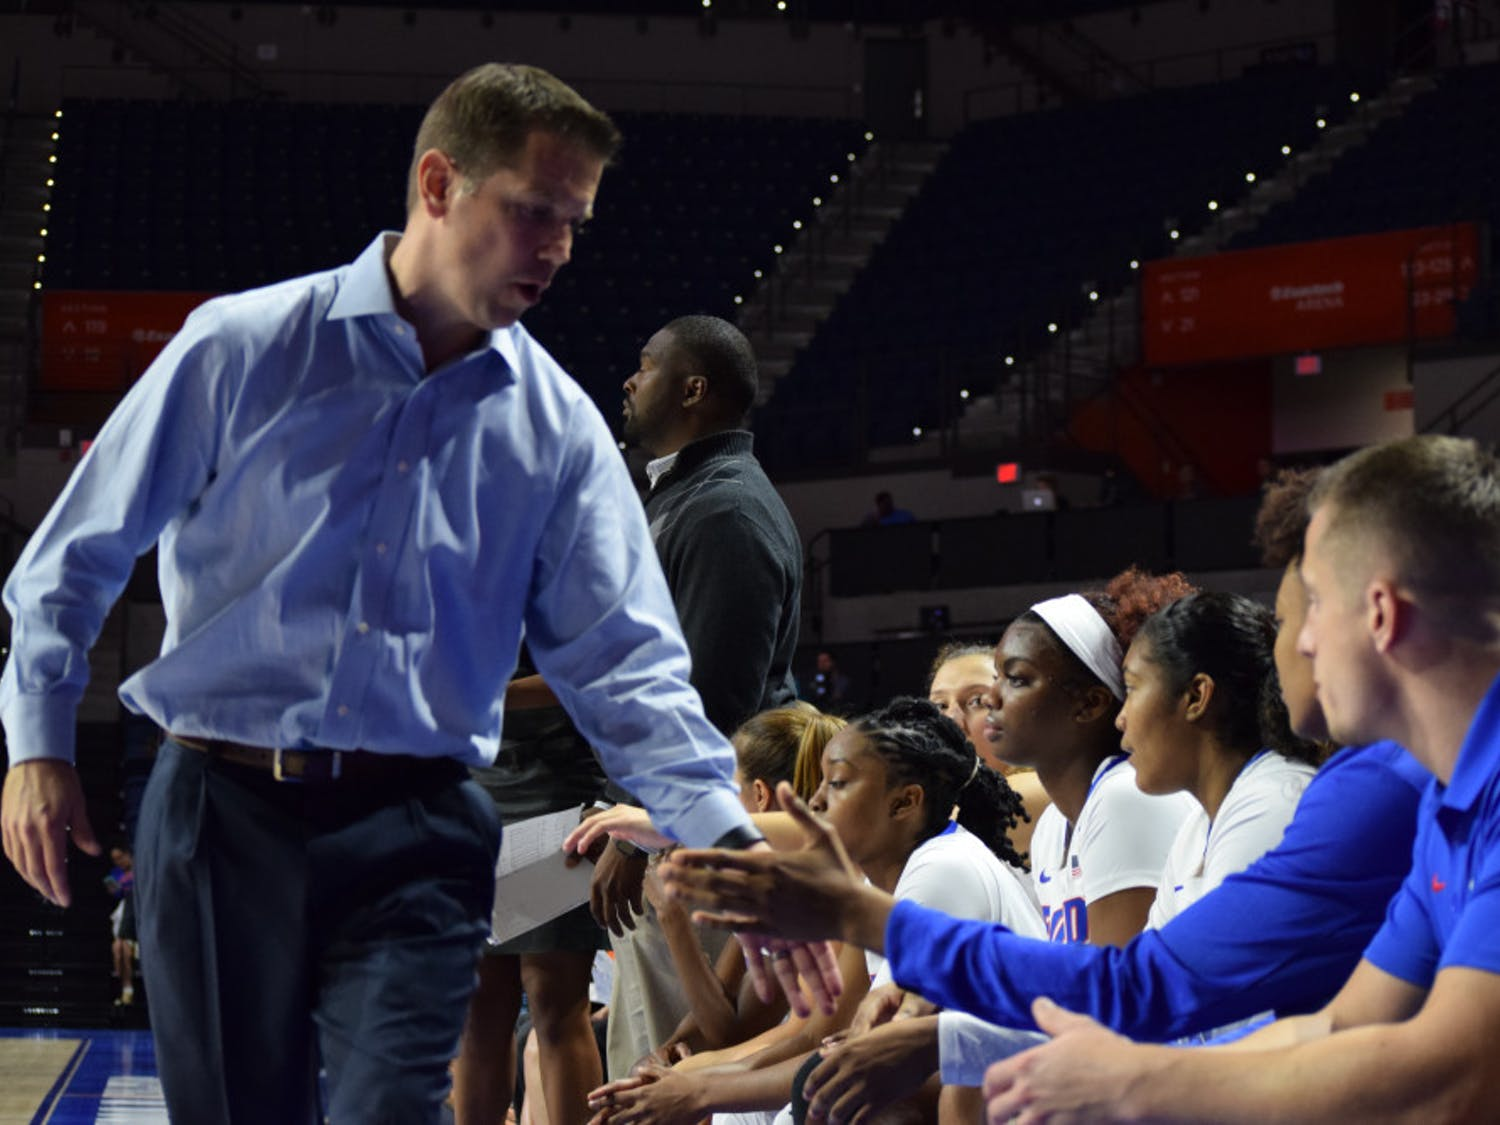 Over three days, Florida will play three games, starting with the Richmond Spiders at 4:30 p.m. Tuesday. With the schools meeting for the fourth time, UF has never notched a win against Richmond.